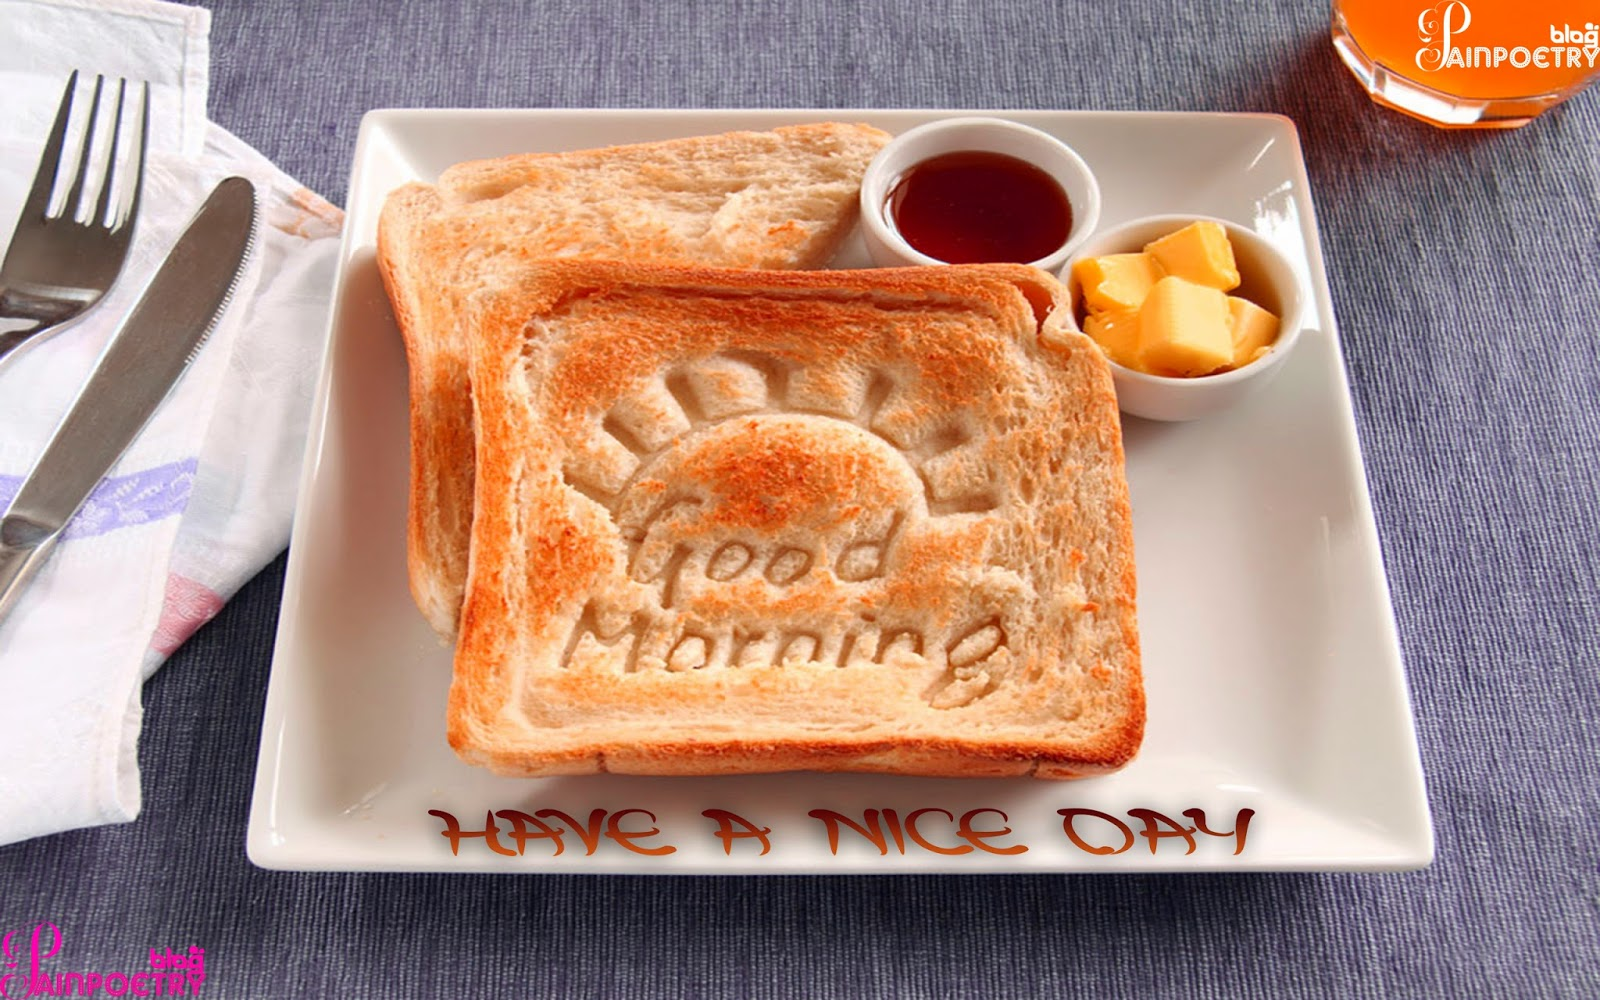 Good-Morning-With-Bread-In-The-Tray-With-Cofee-Near-Spoon-On-Paper-HD